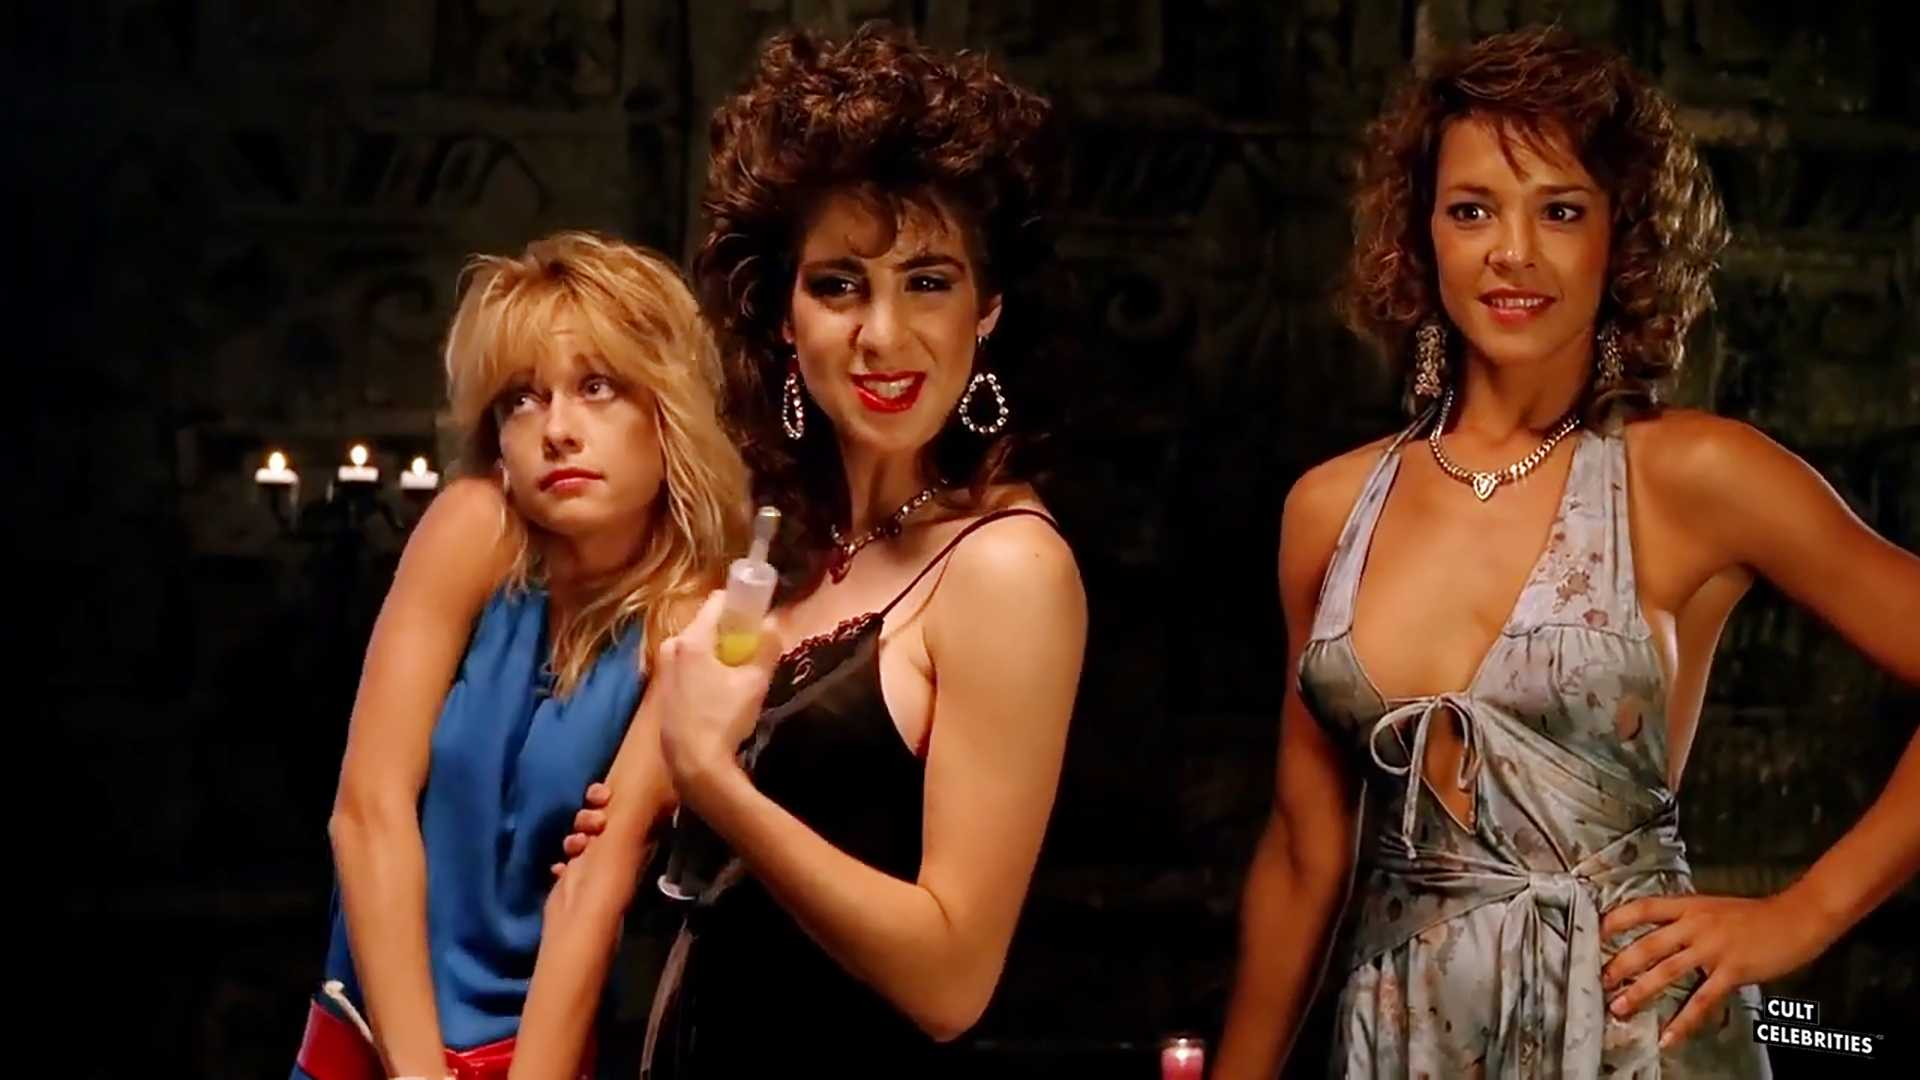 Linnea Quigley, Michelle Bauer and Esther Elise in Hollywood Chainsaw Hookers (1988)